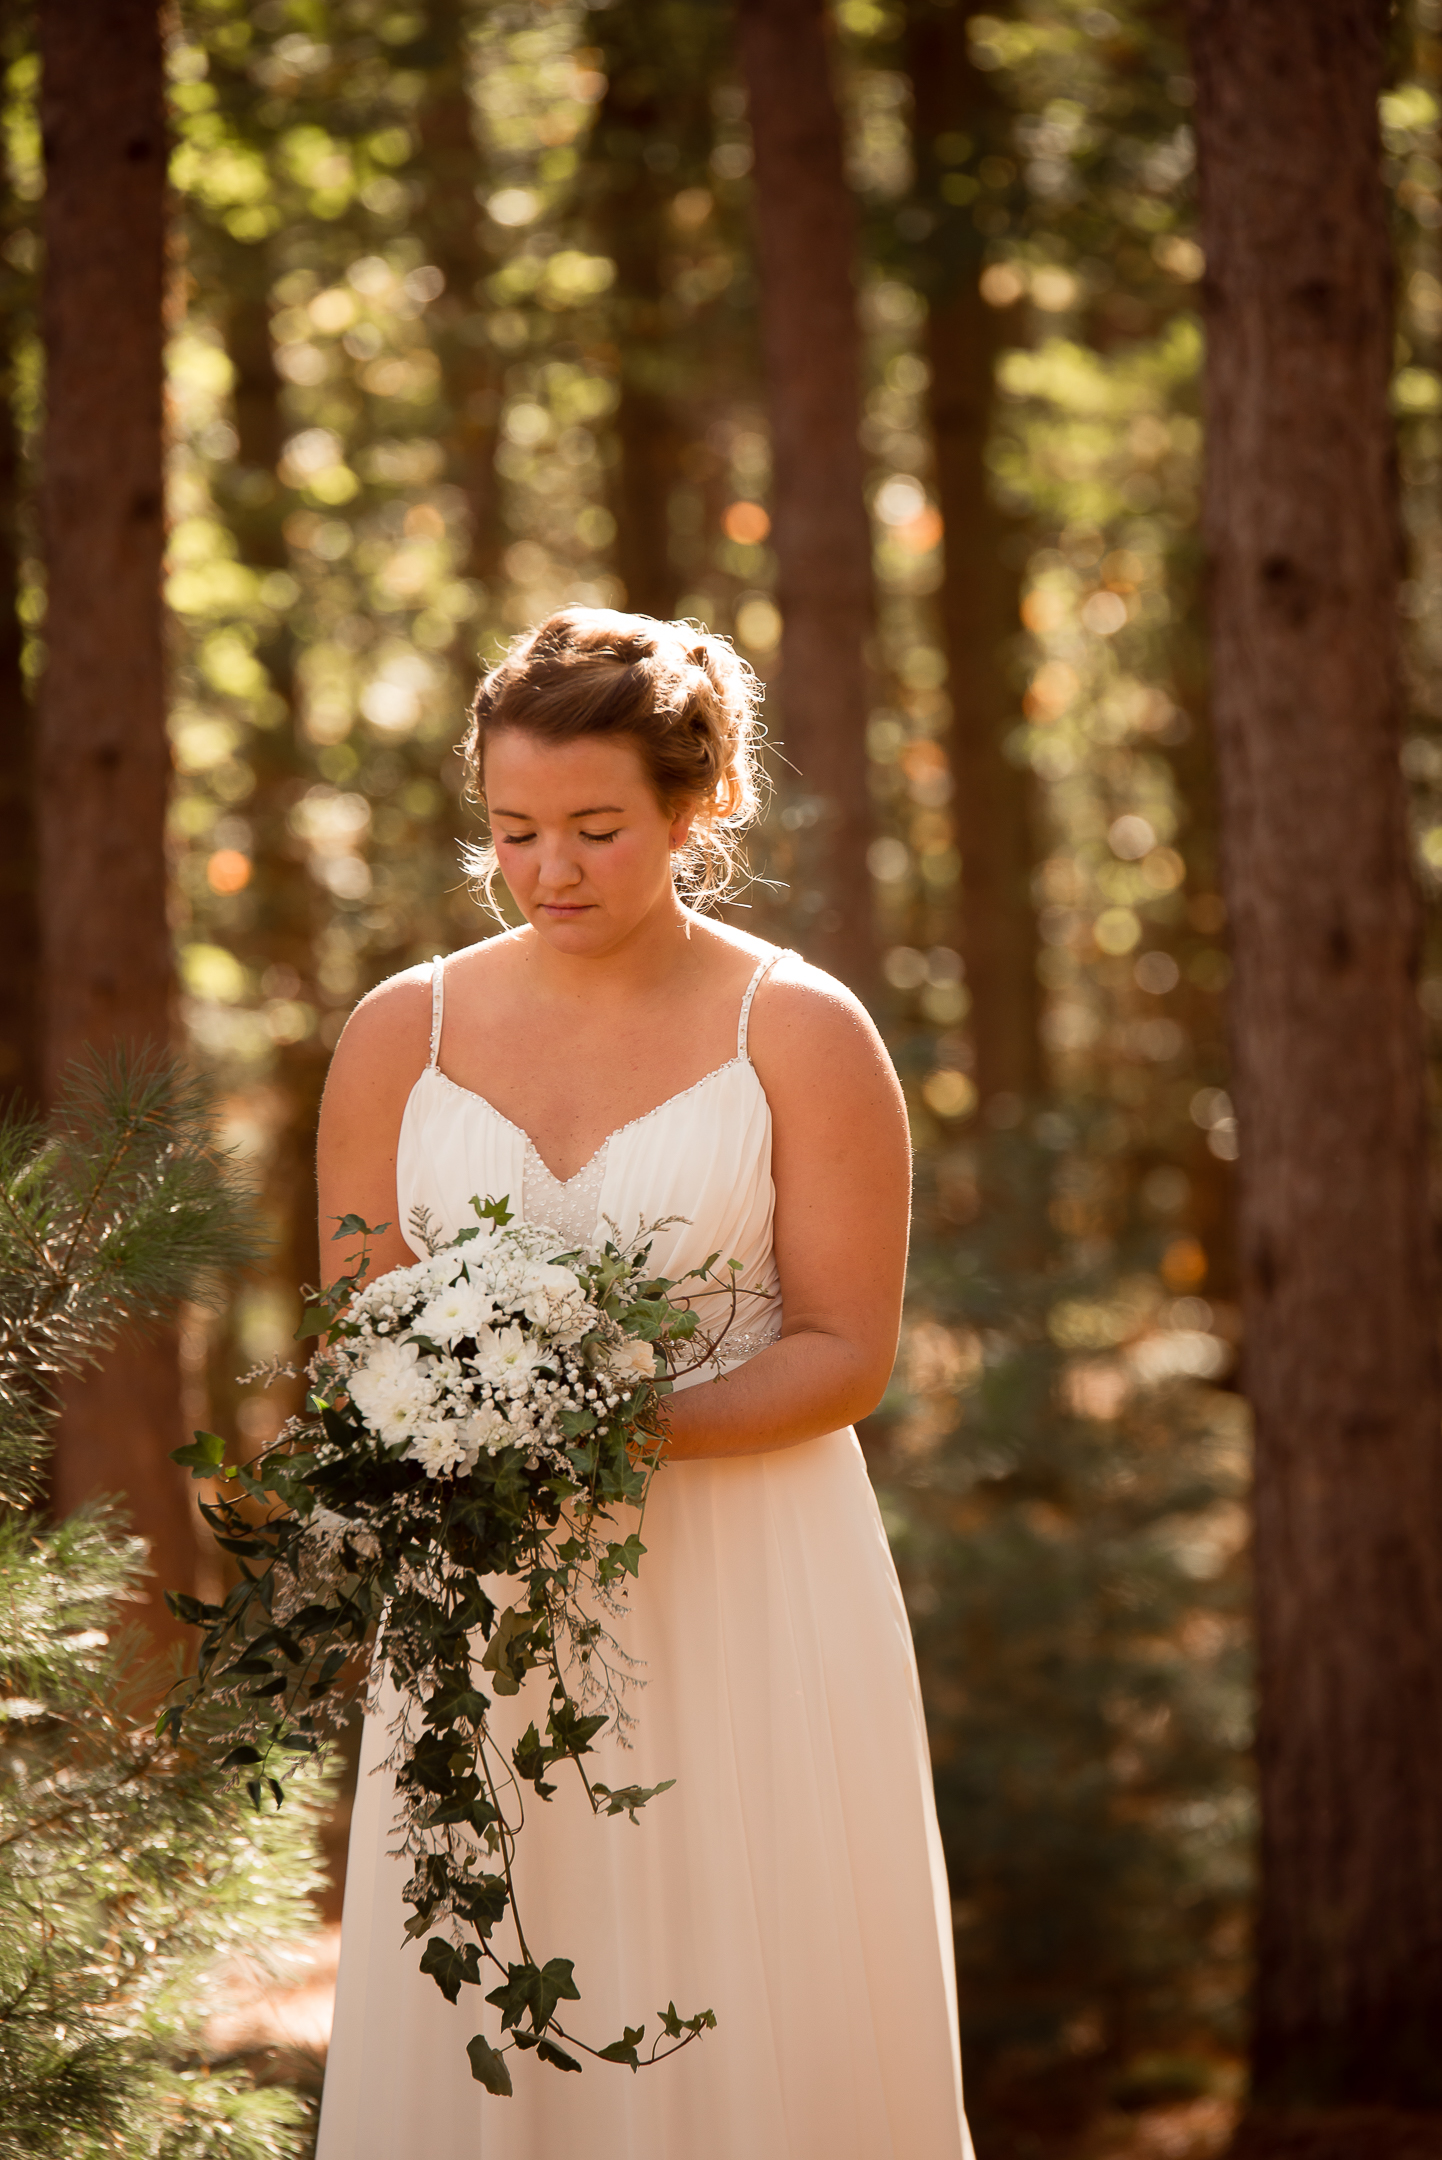 Naomi Lucienne Photography - Weddings - 170930601.jpg